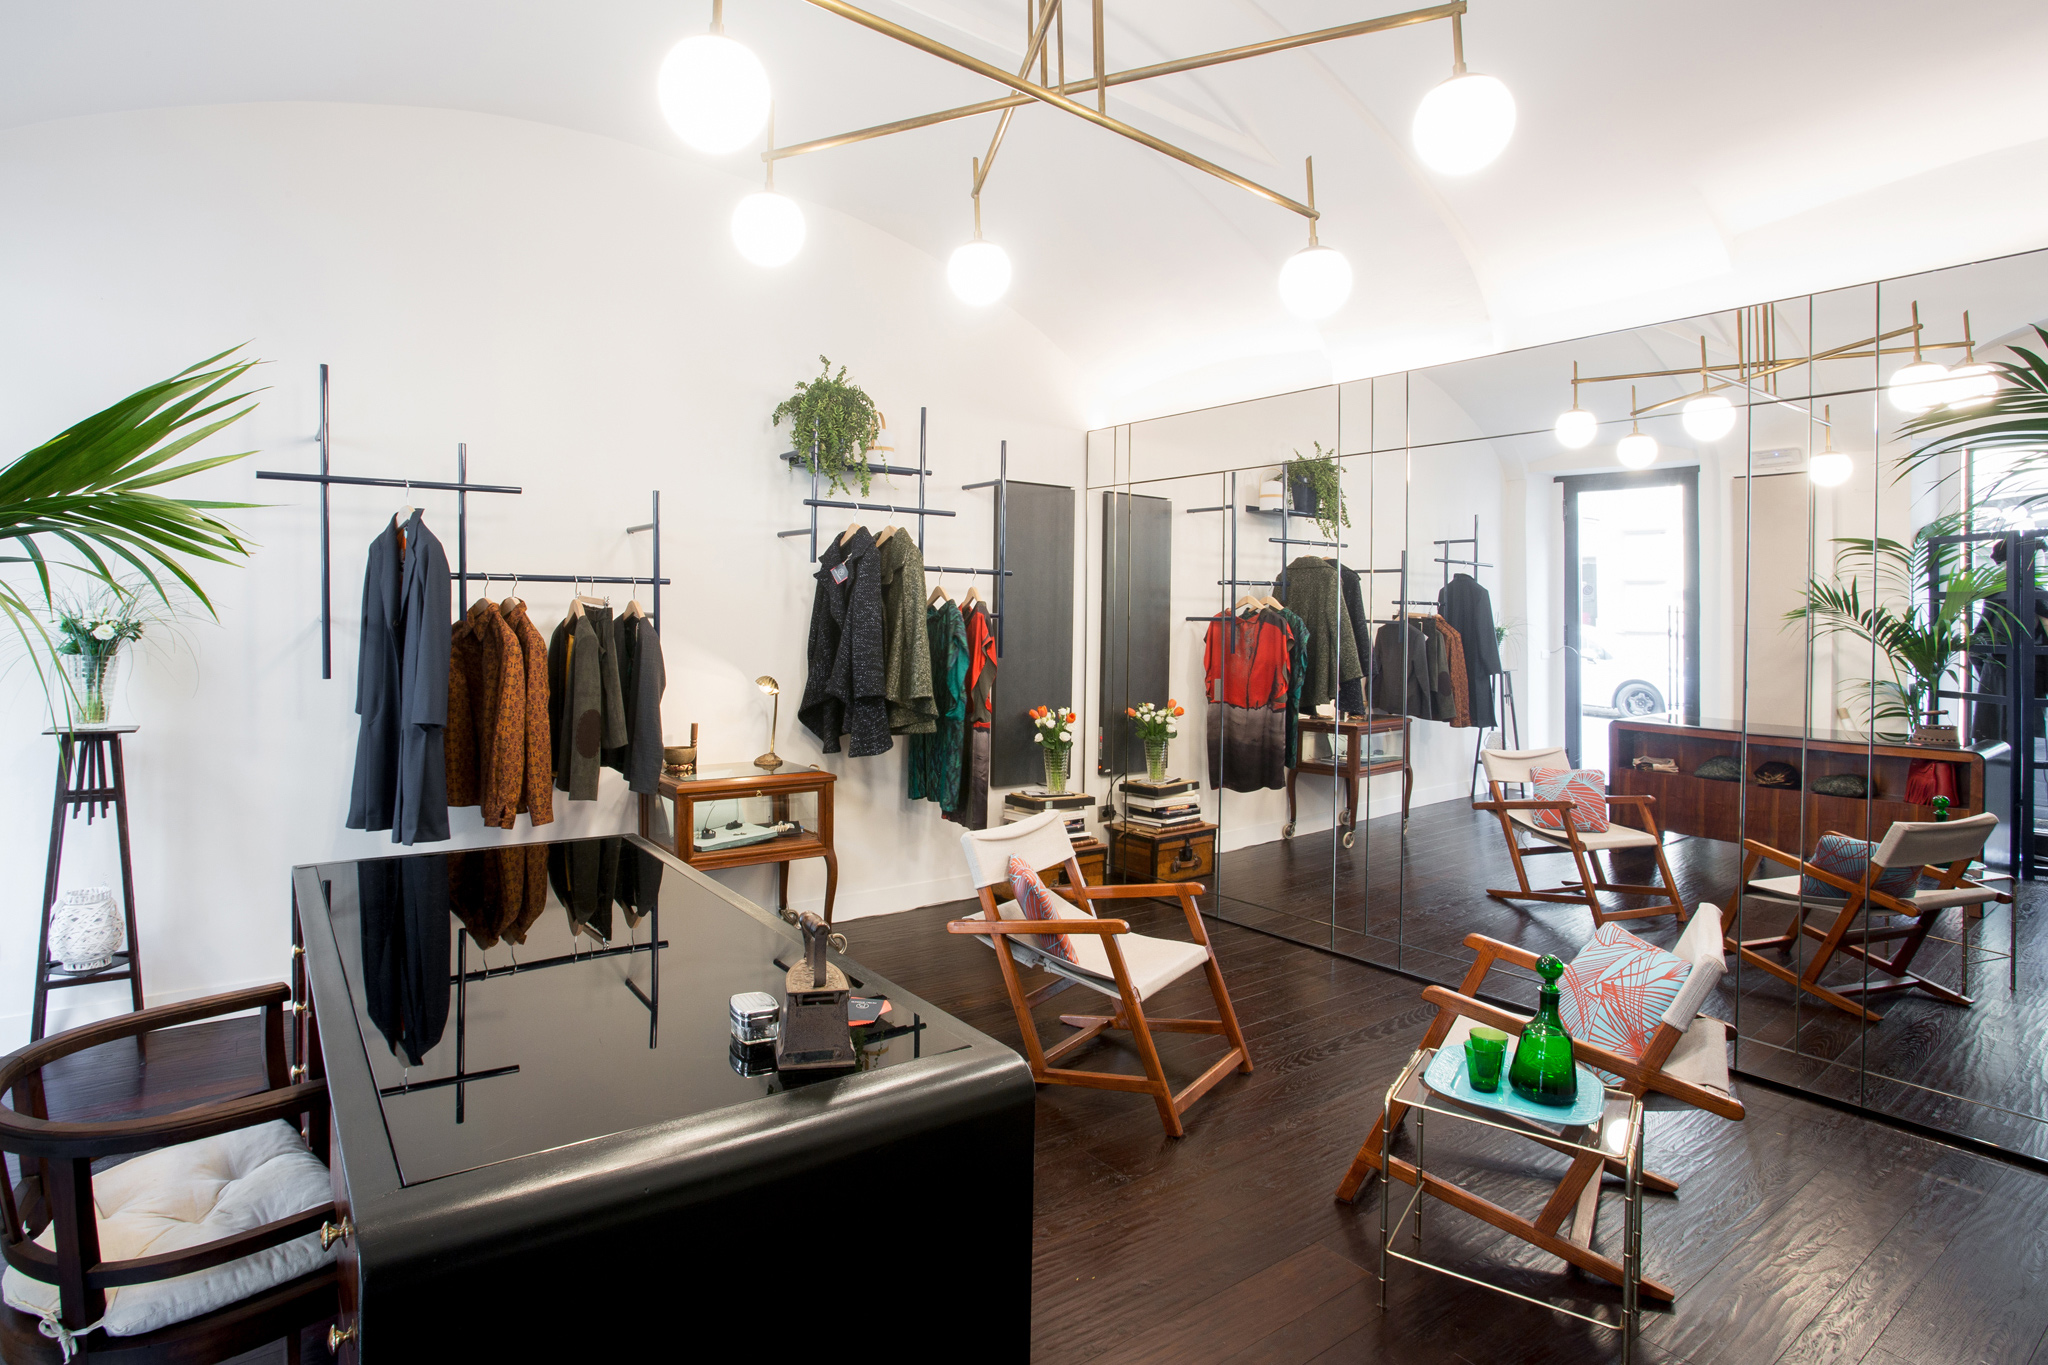 pietro-barbieri-shop-_-made-in-italy-004 ATELIER